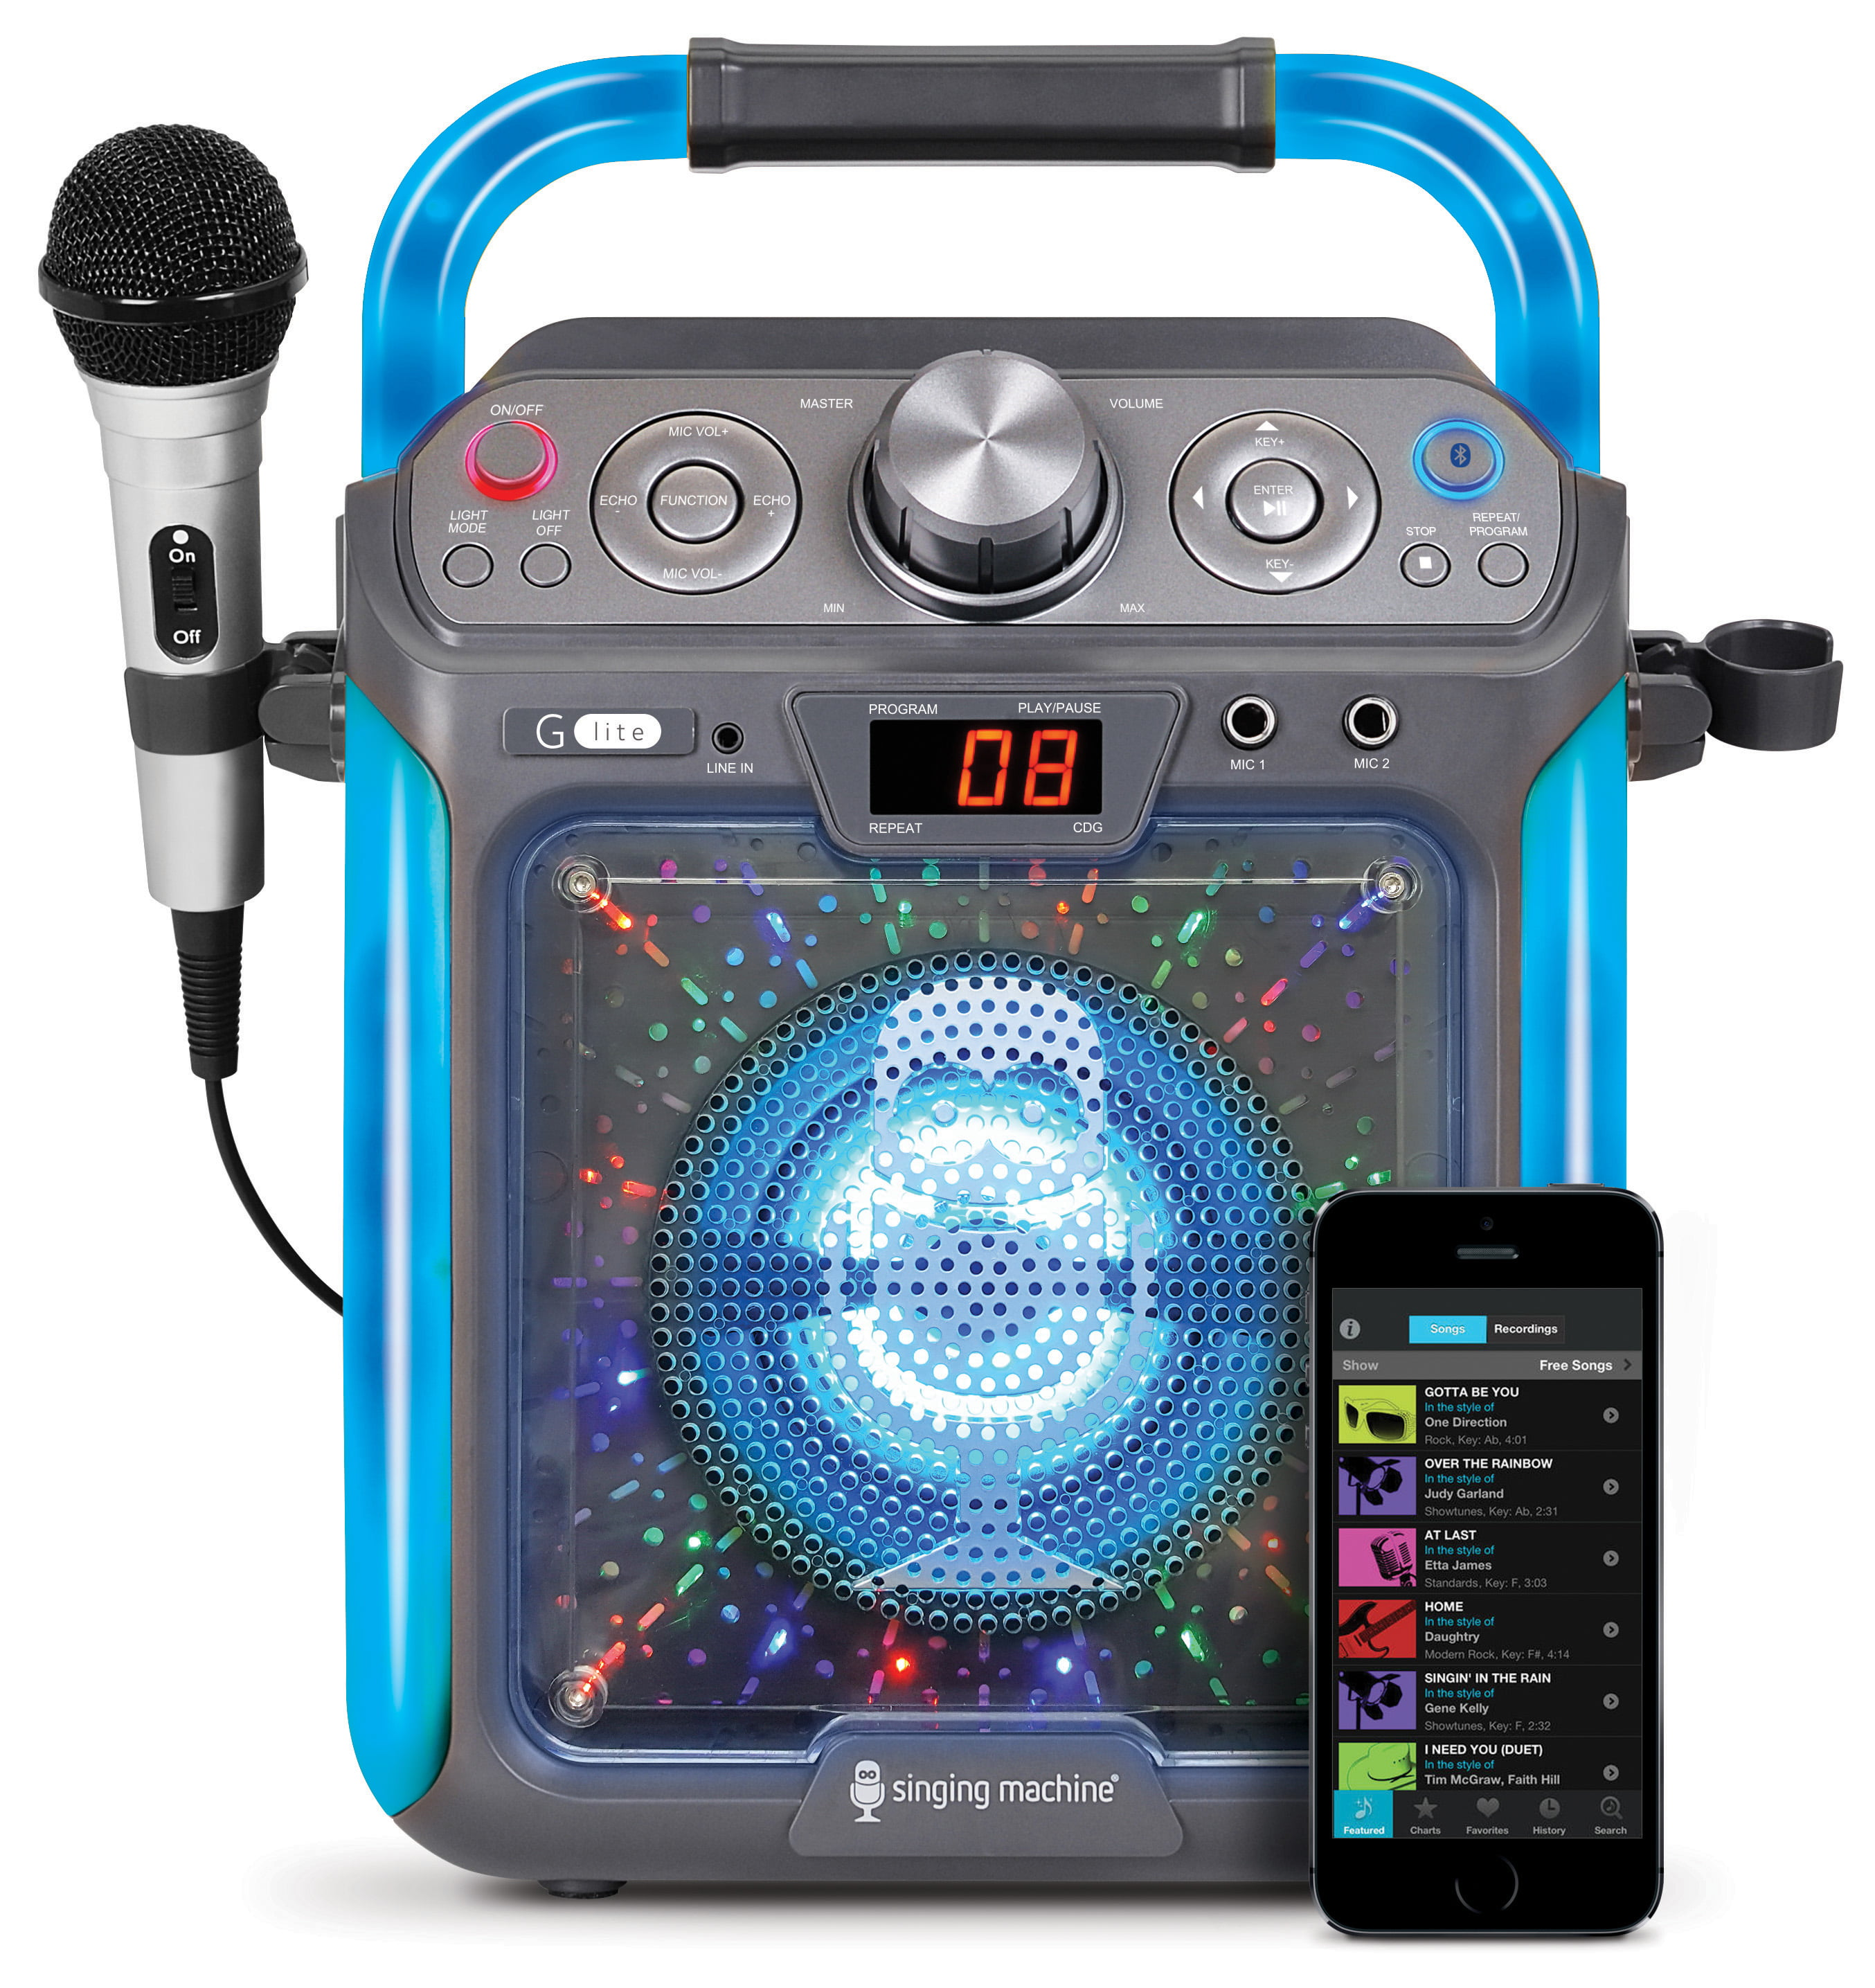 Singing Machine SML2082BTC Bluetooth G-Lite CD+G Karaoke System by The Singing Machine